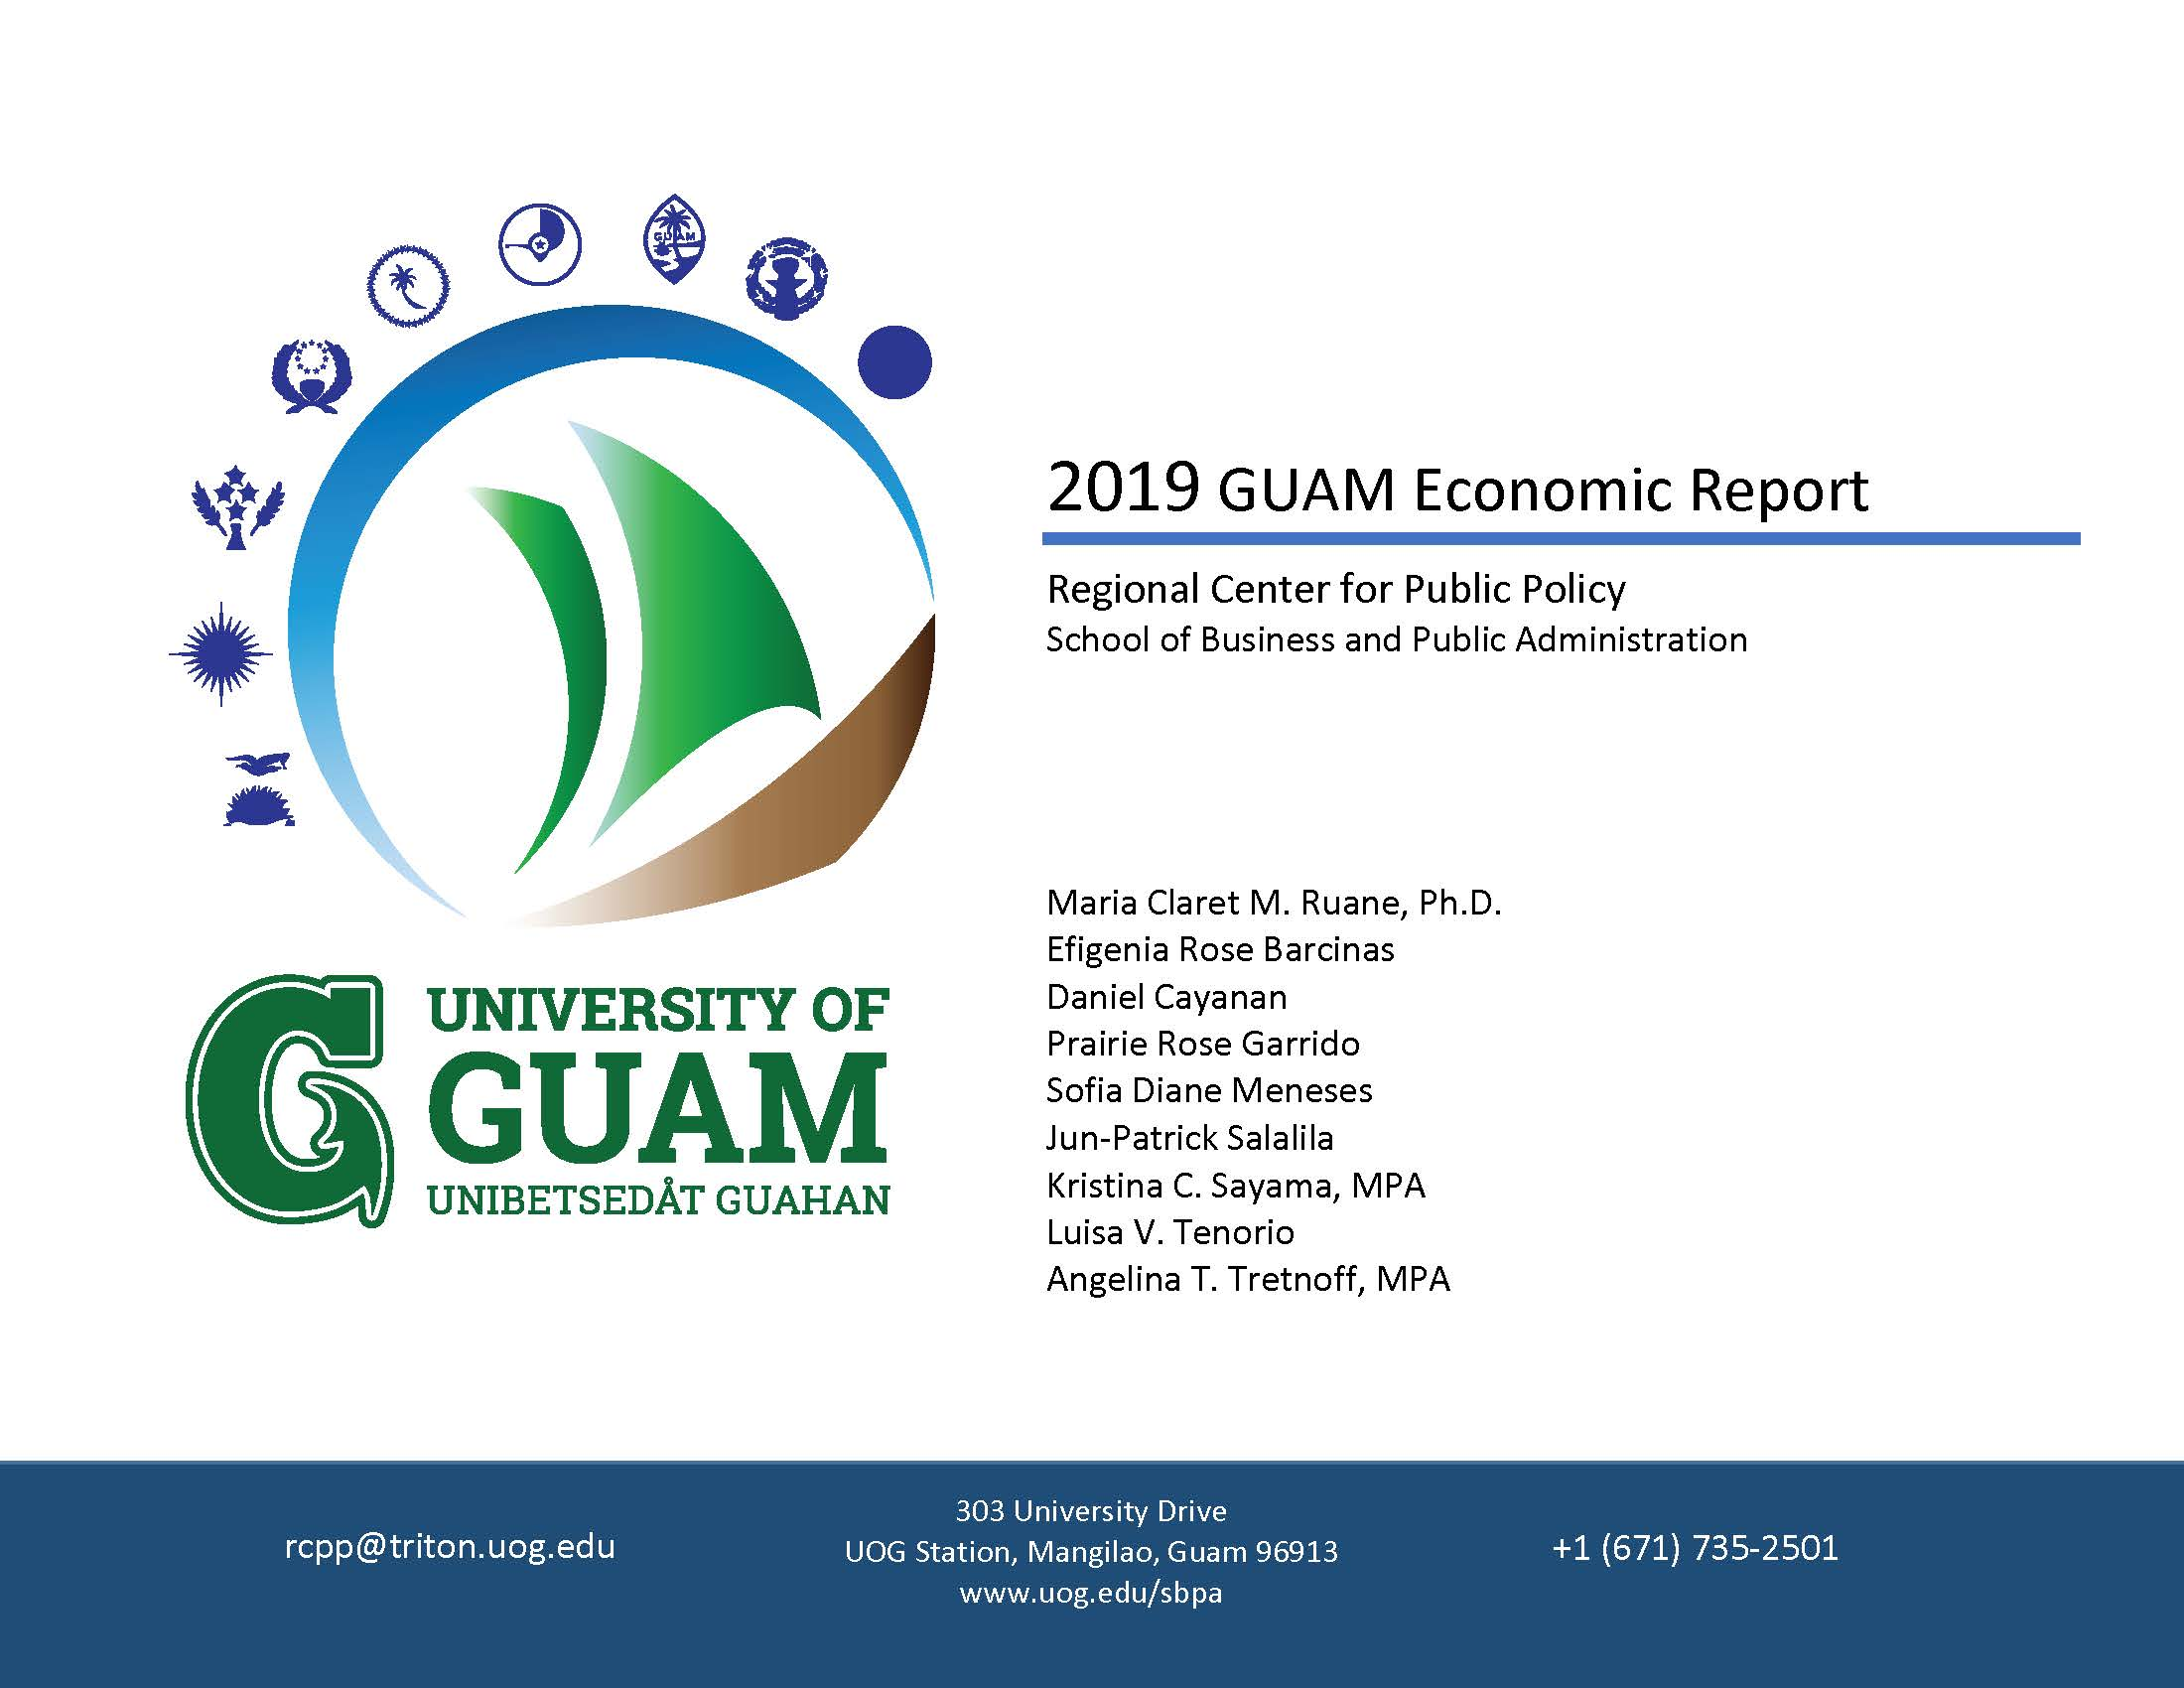 2019 Guam Economic Report Cover